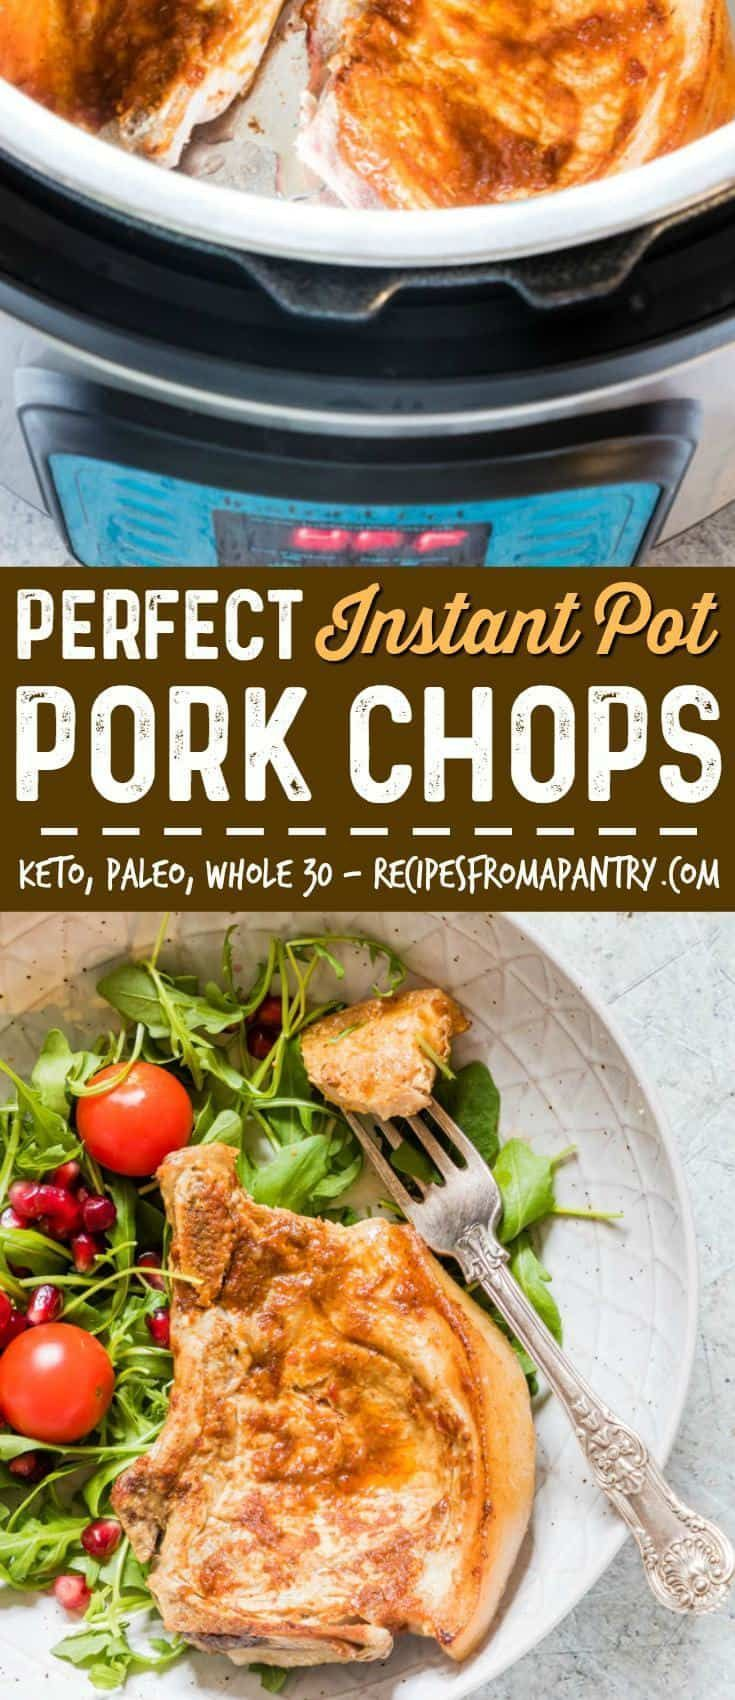 You are going to LOVE this easy Instant Pot Pork Chops ...